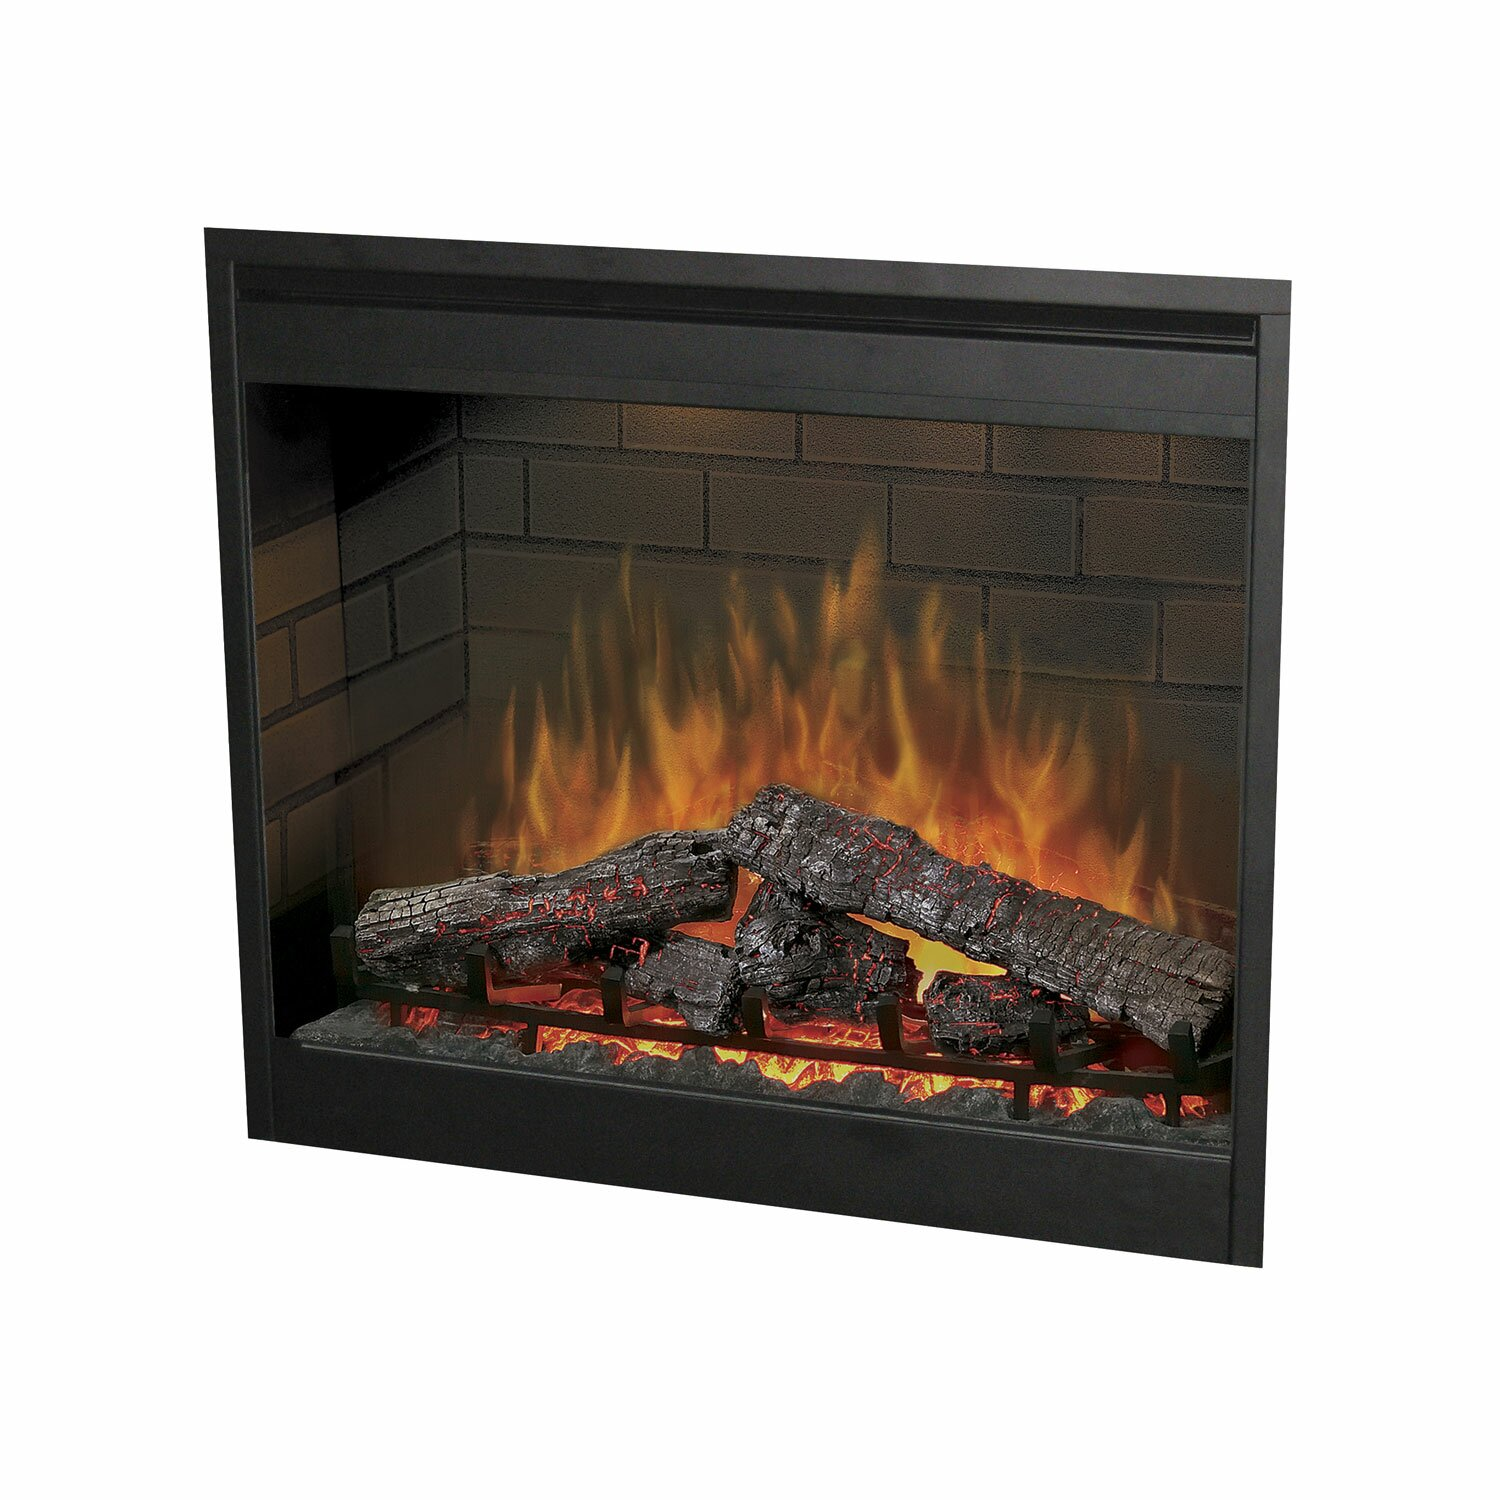 Dimplex Electraflame 30 Self Trimming Electric Fireplace Reviews Wayfair